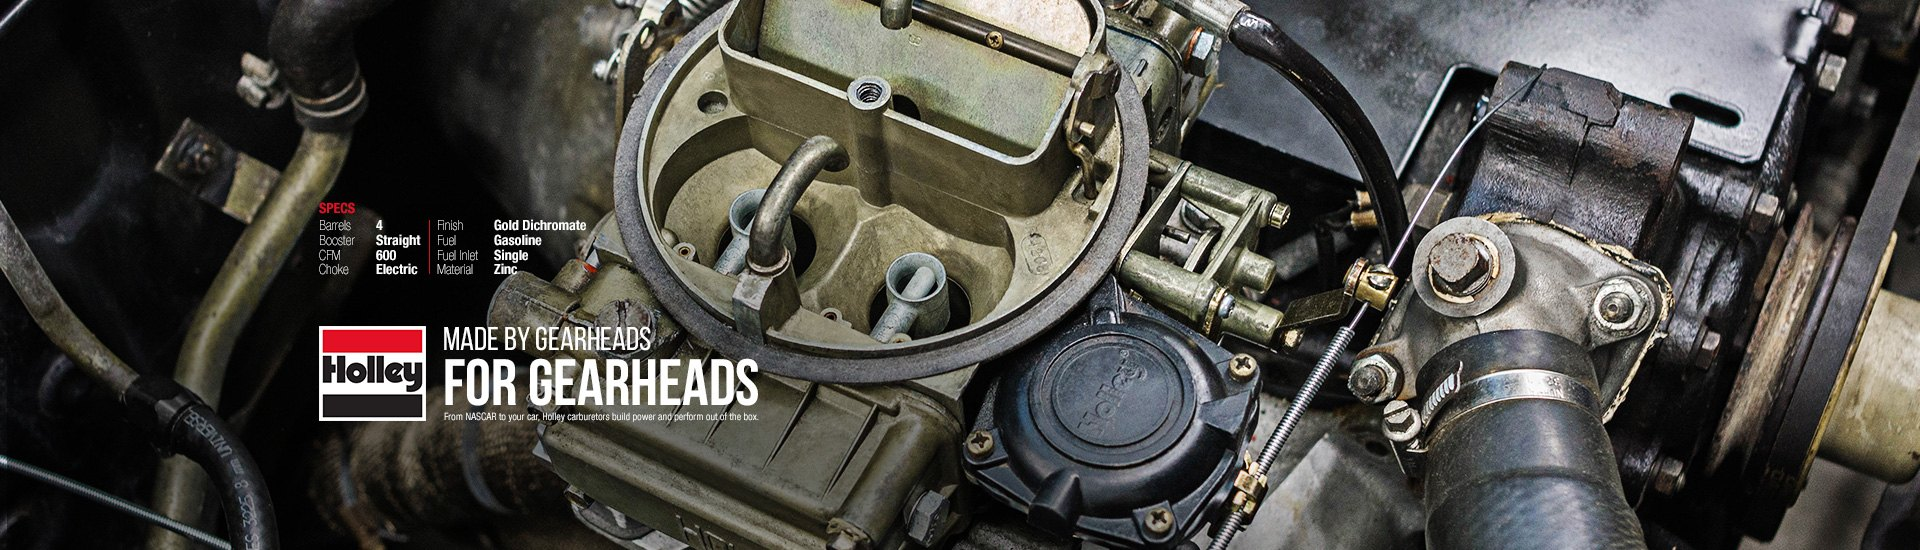 Auto Parts At Brakes Mufflers Shocks Batteries Tune Up Fuel Filter Location On 2006 Toyota Camry